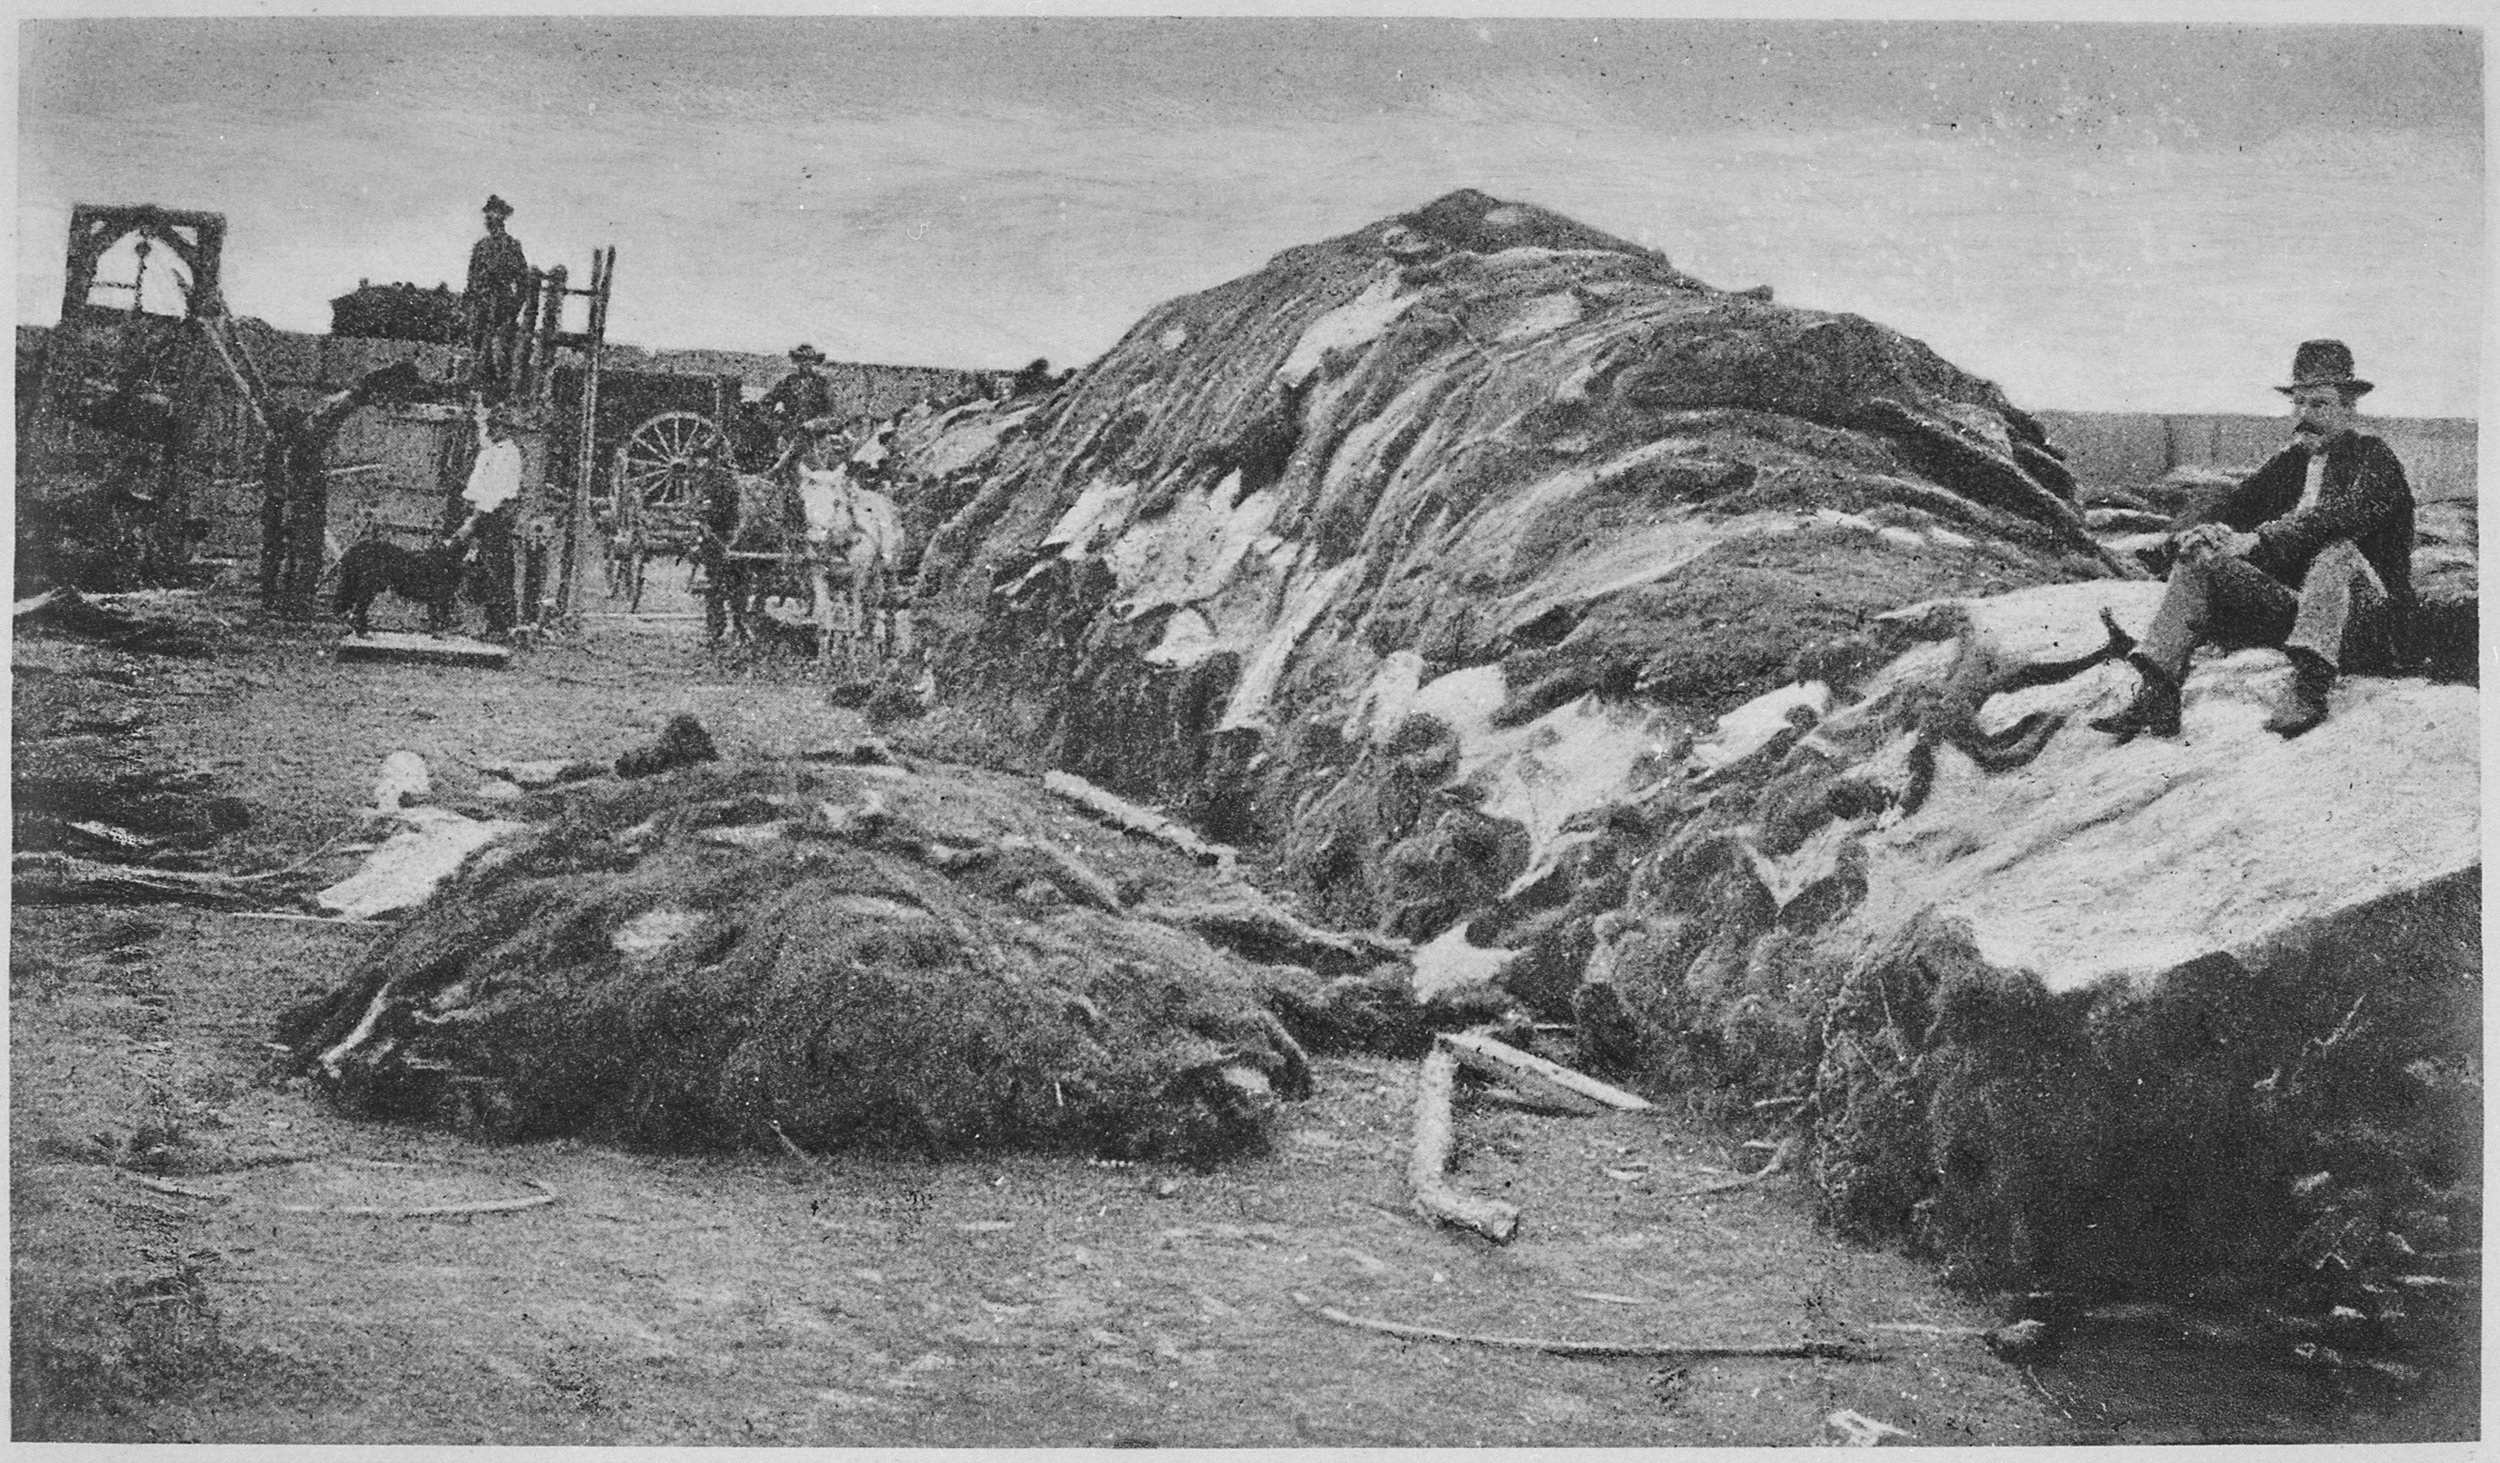 Rath & Wright's Buffalo Hide Yard, Dodge City, Kansas, 1878.                                                                          Image from the National Archive and Records Administration